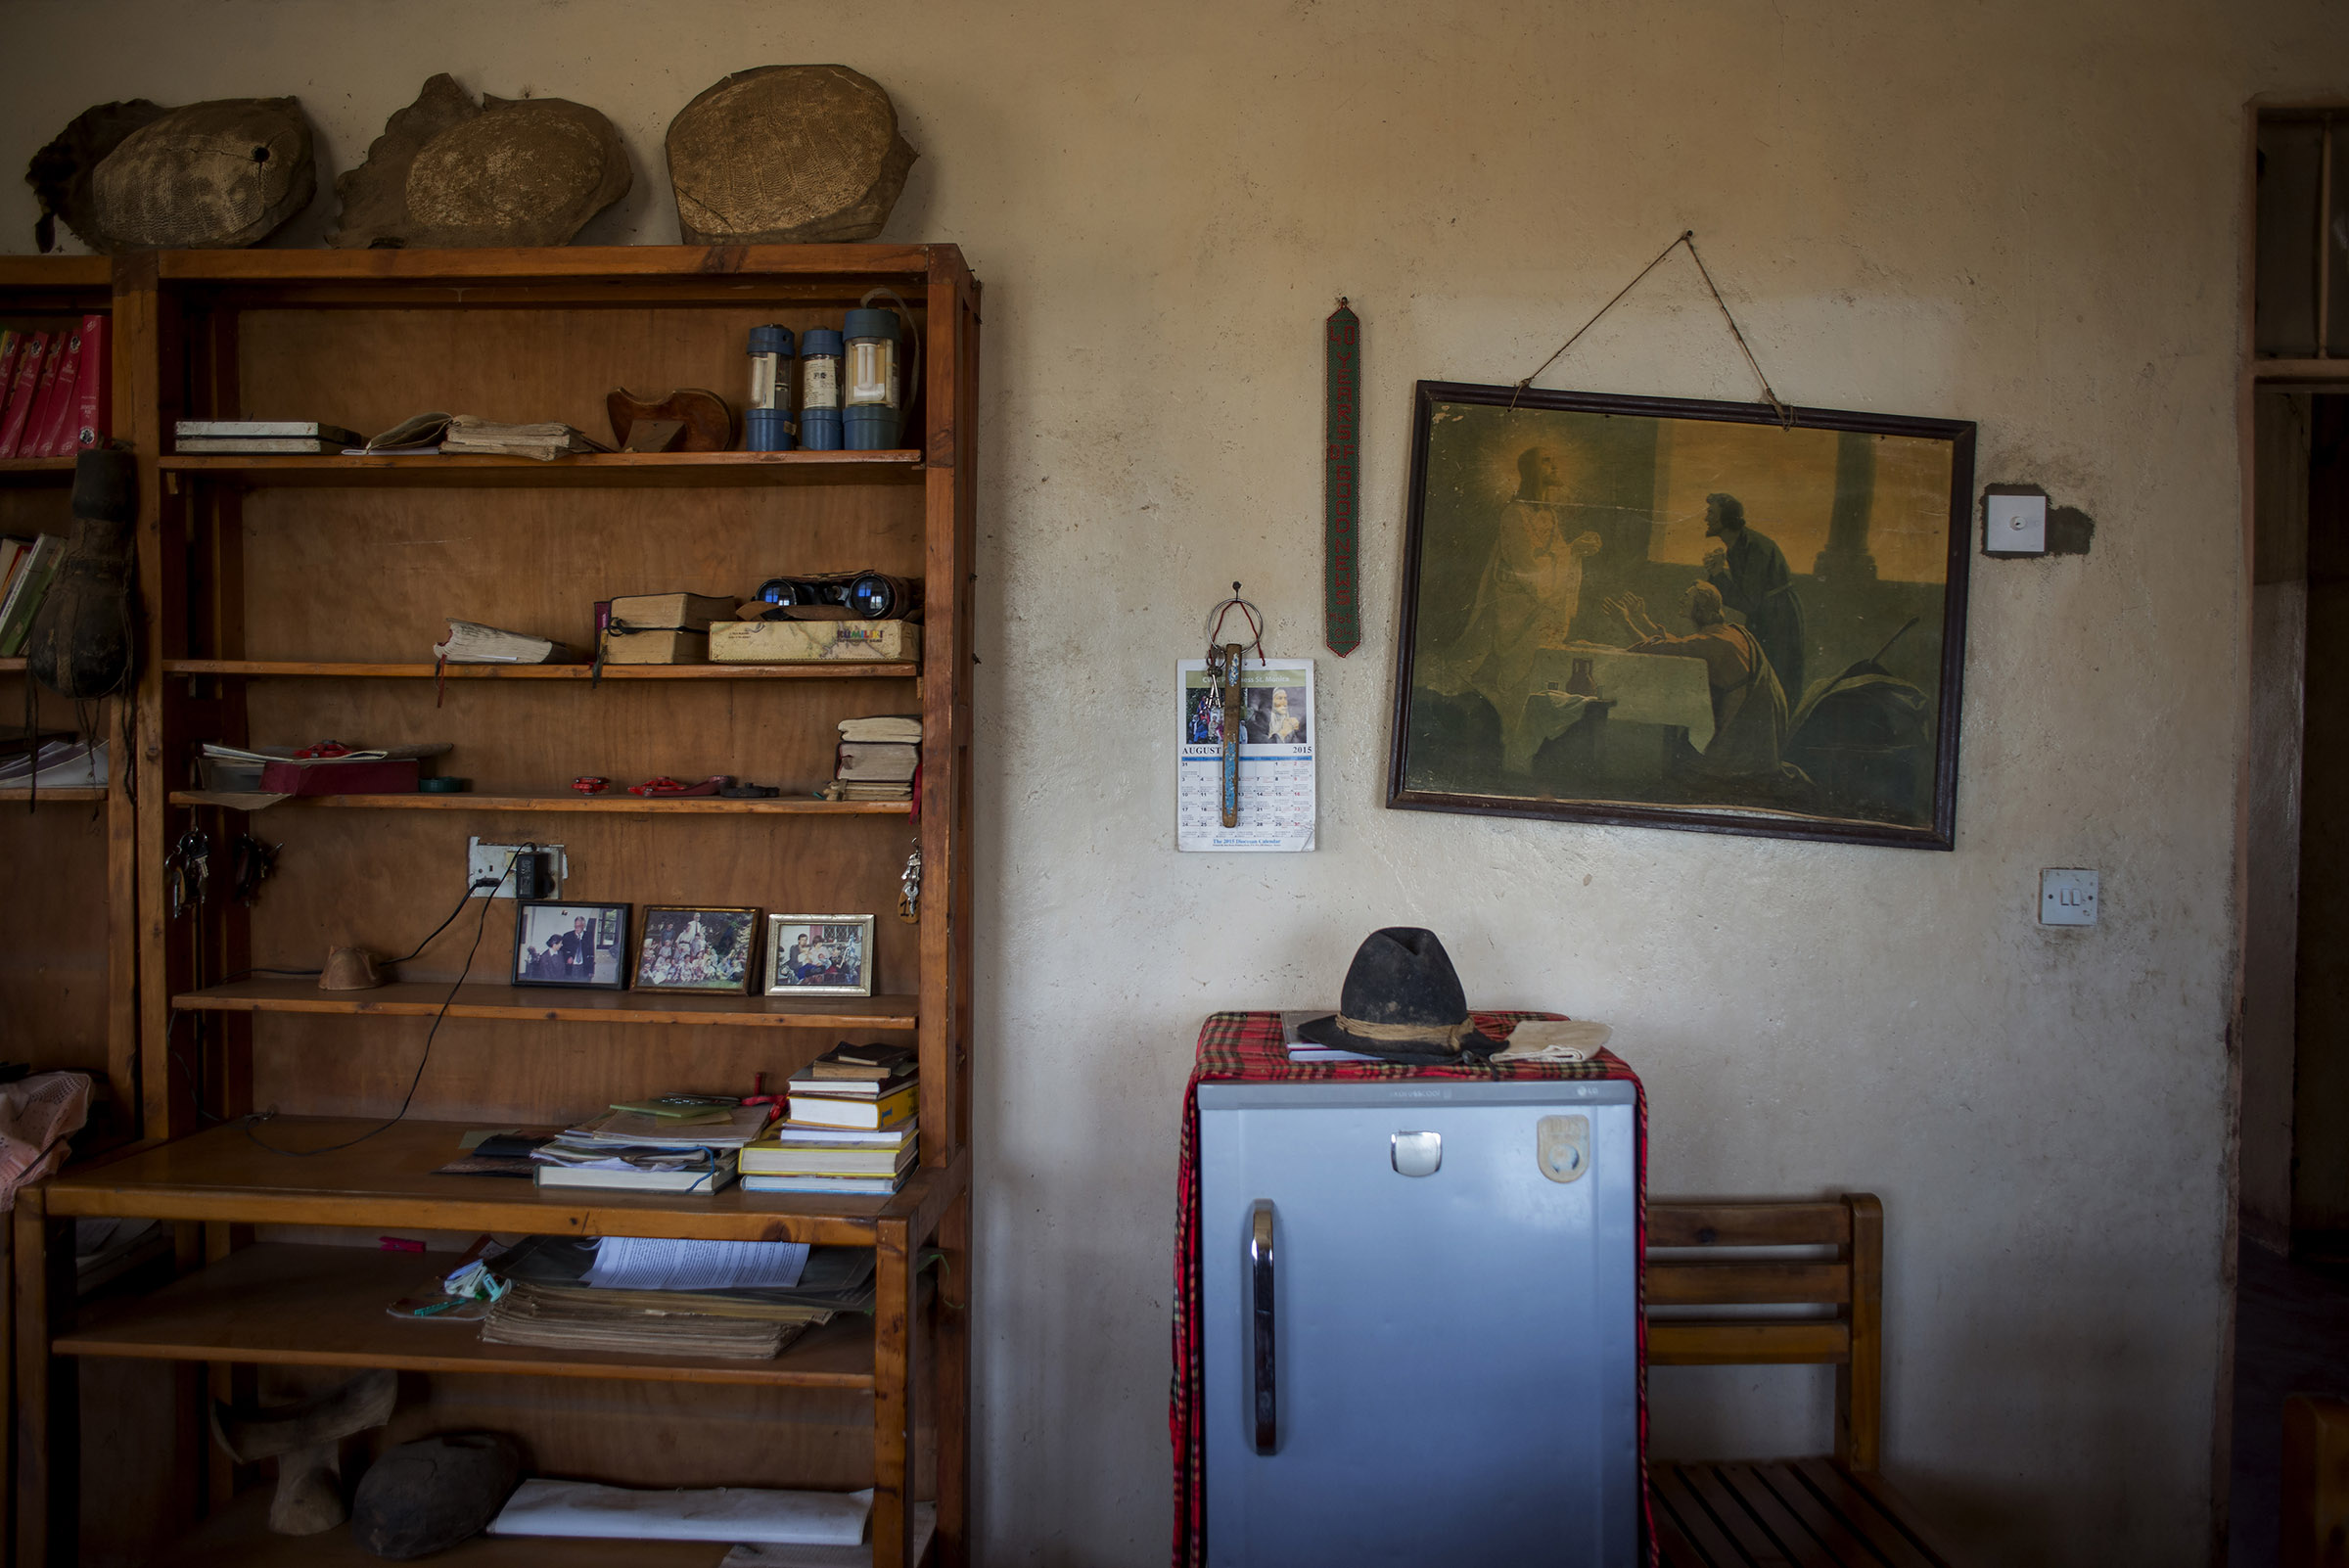 The dining room of St. Peter the Fisherman parish in Illeret, Kenya. Father Florian is known for wearing his German hat, except during meals and church services. (Christena Dowsett/The GroundTruth Project)